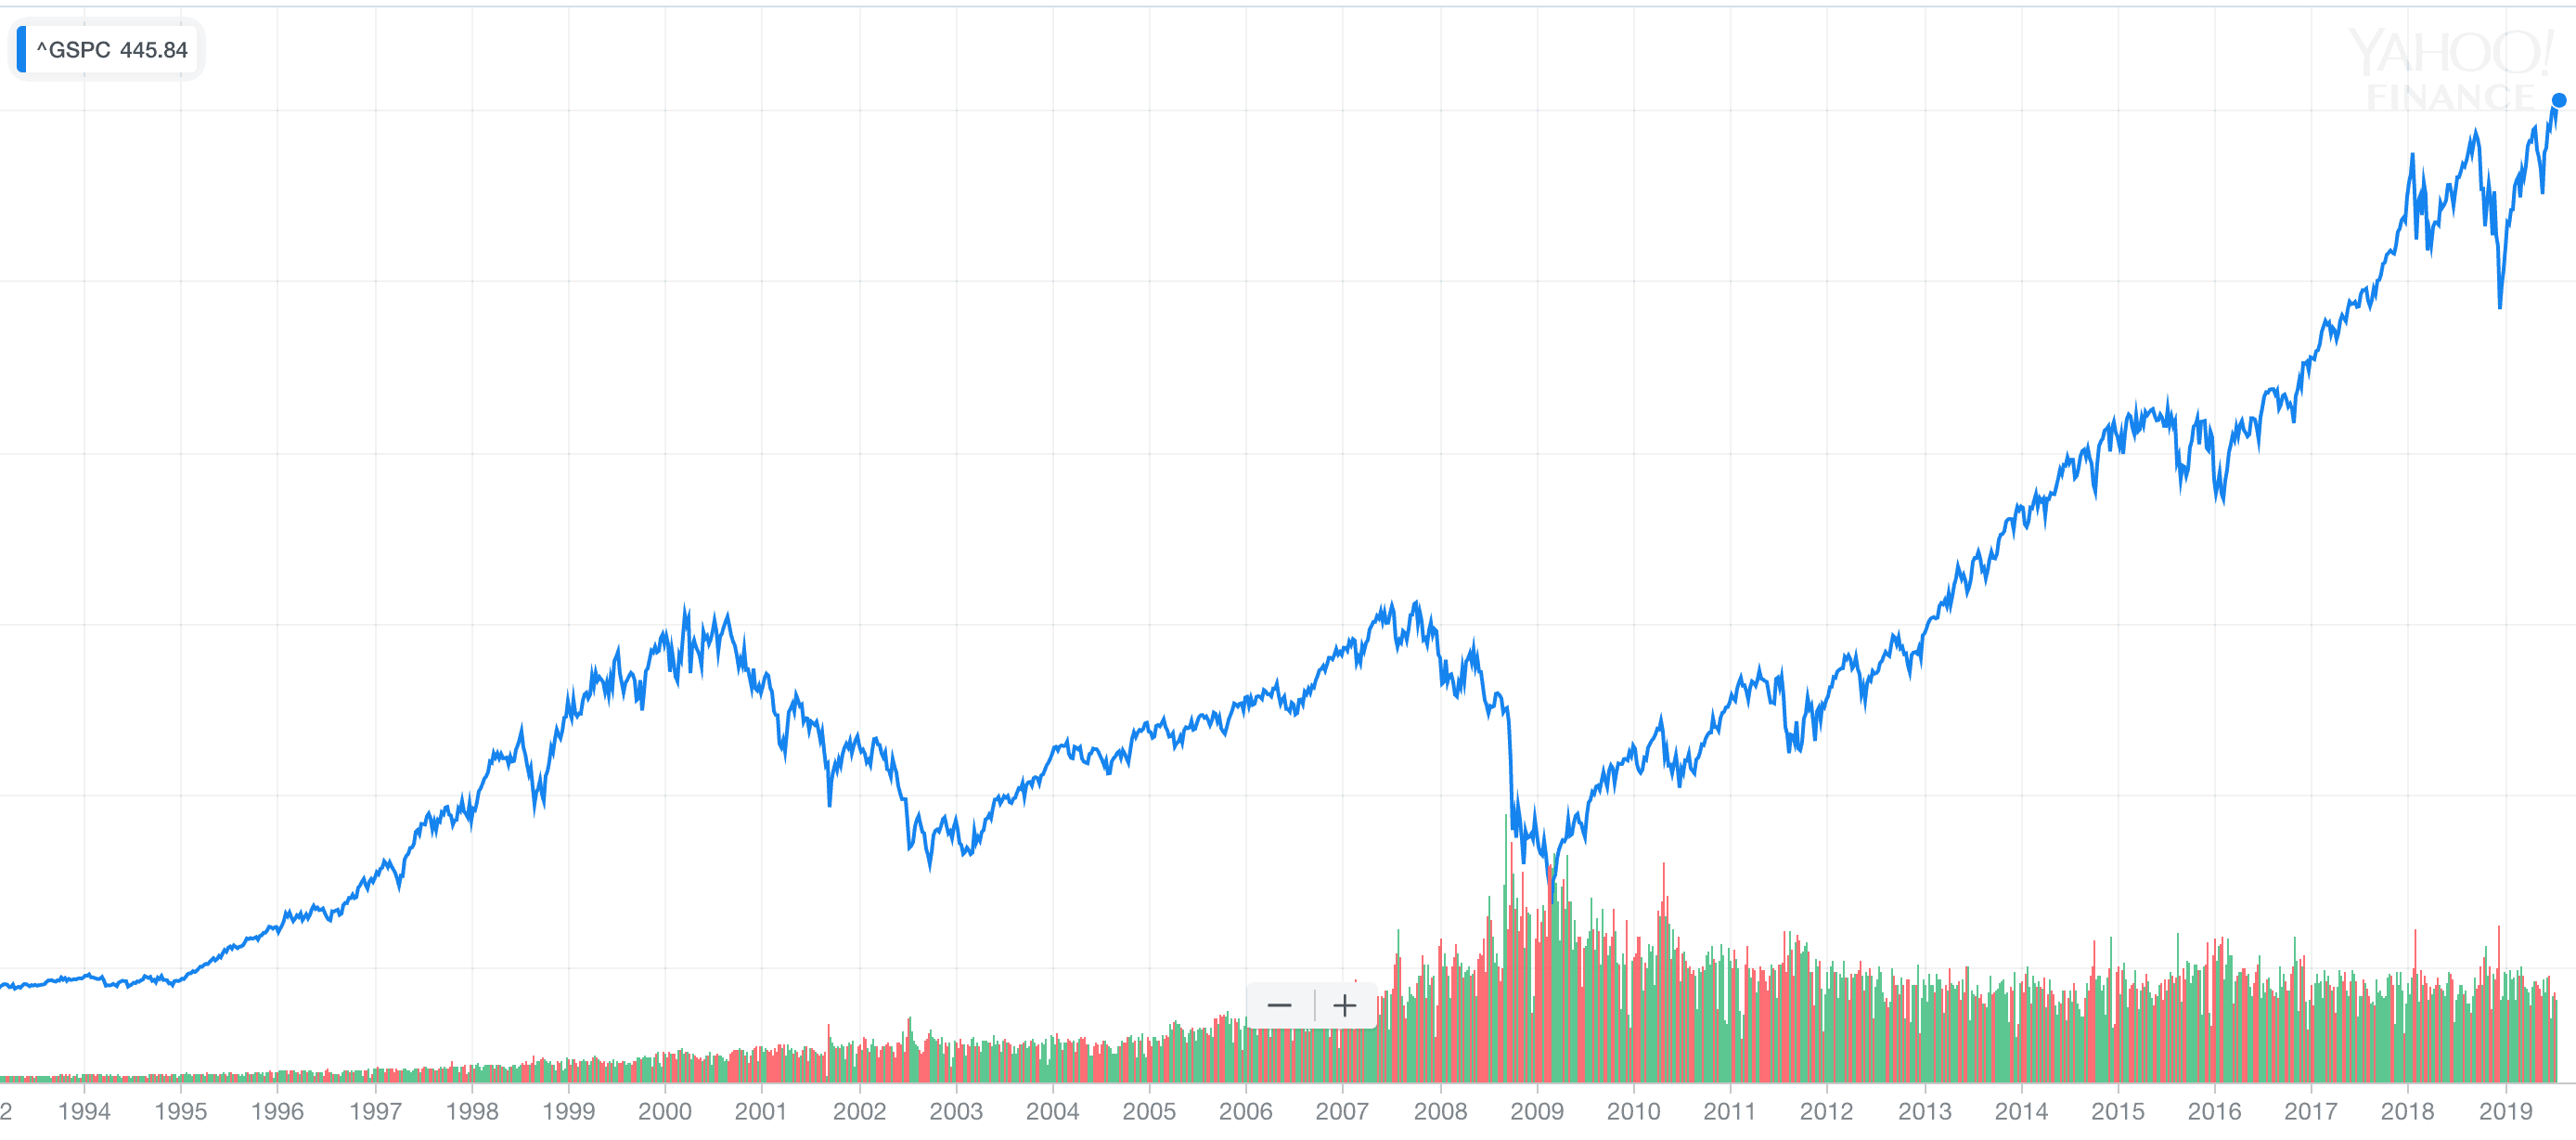 S&P 500 Market Index